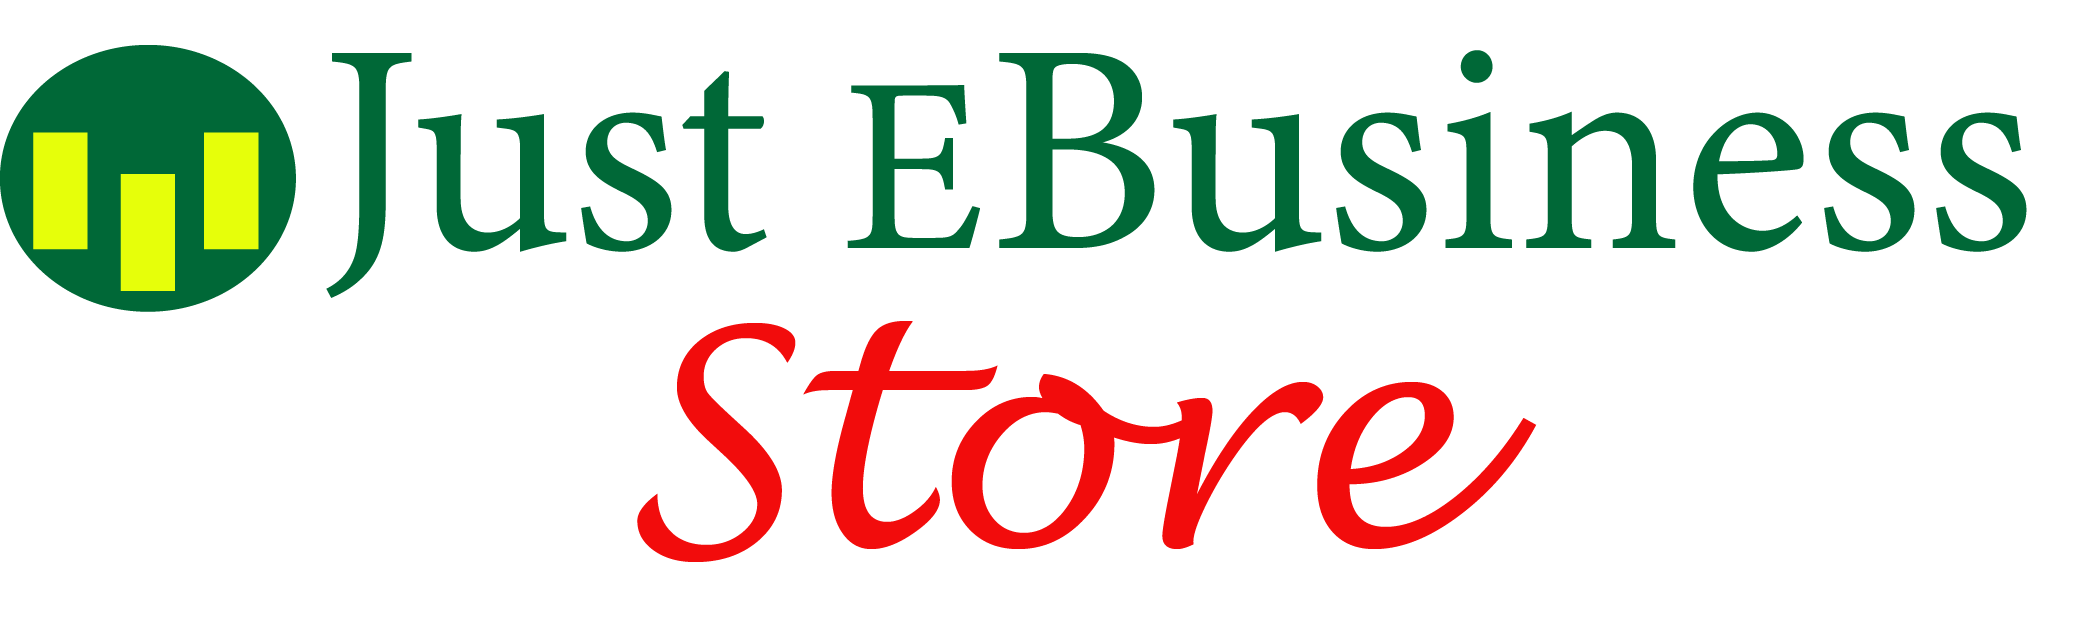 Just eBusiness Store